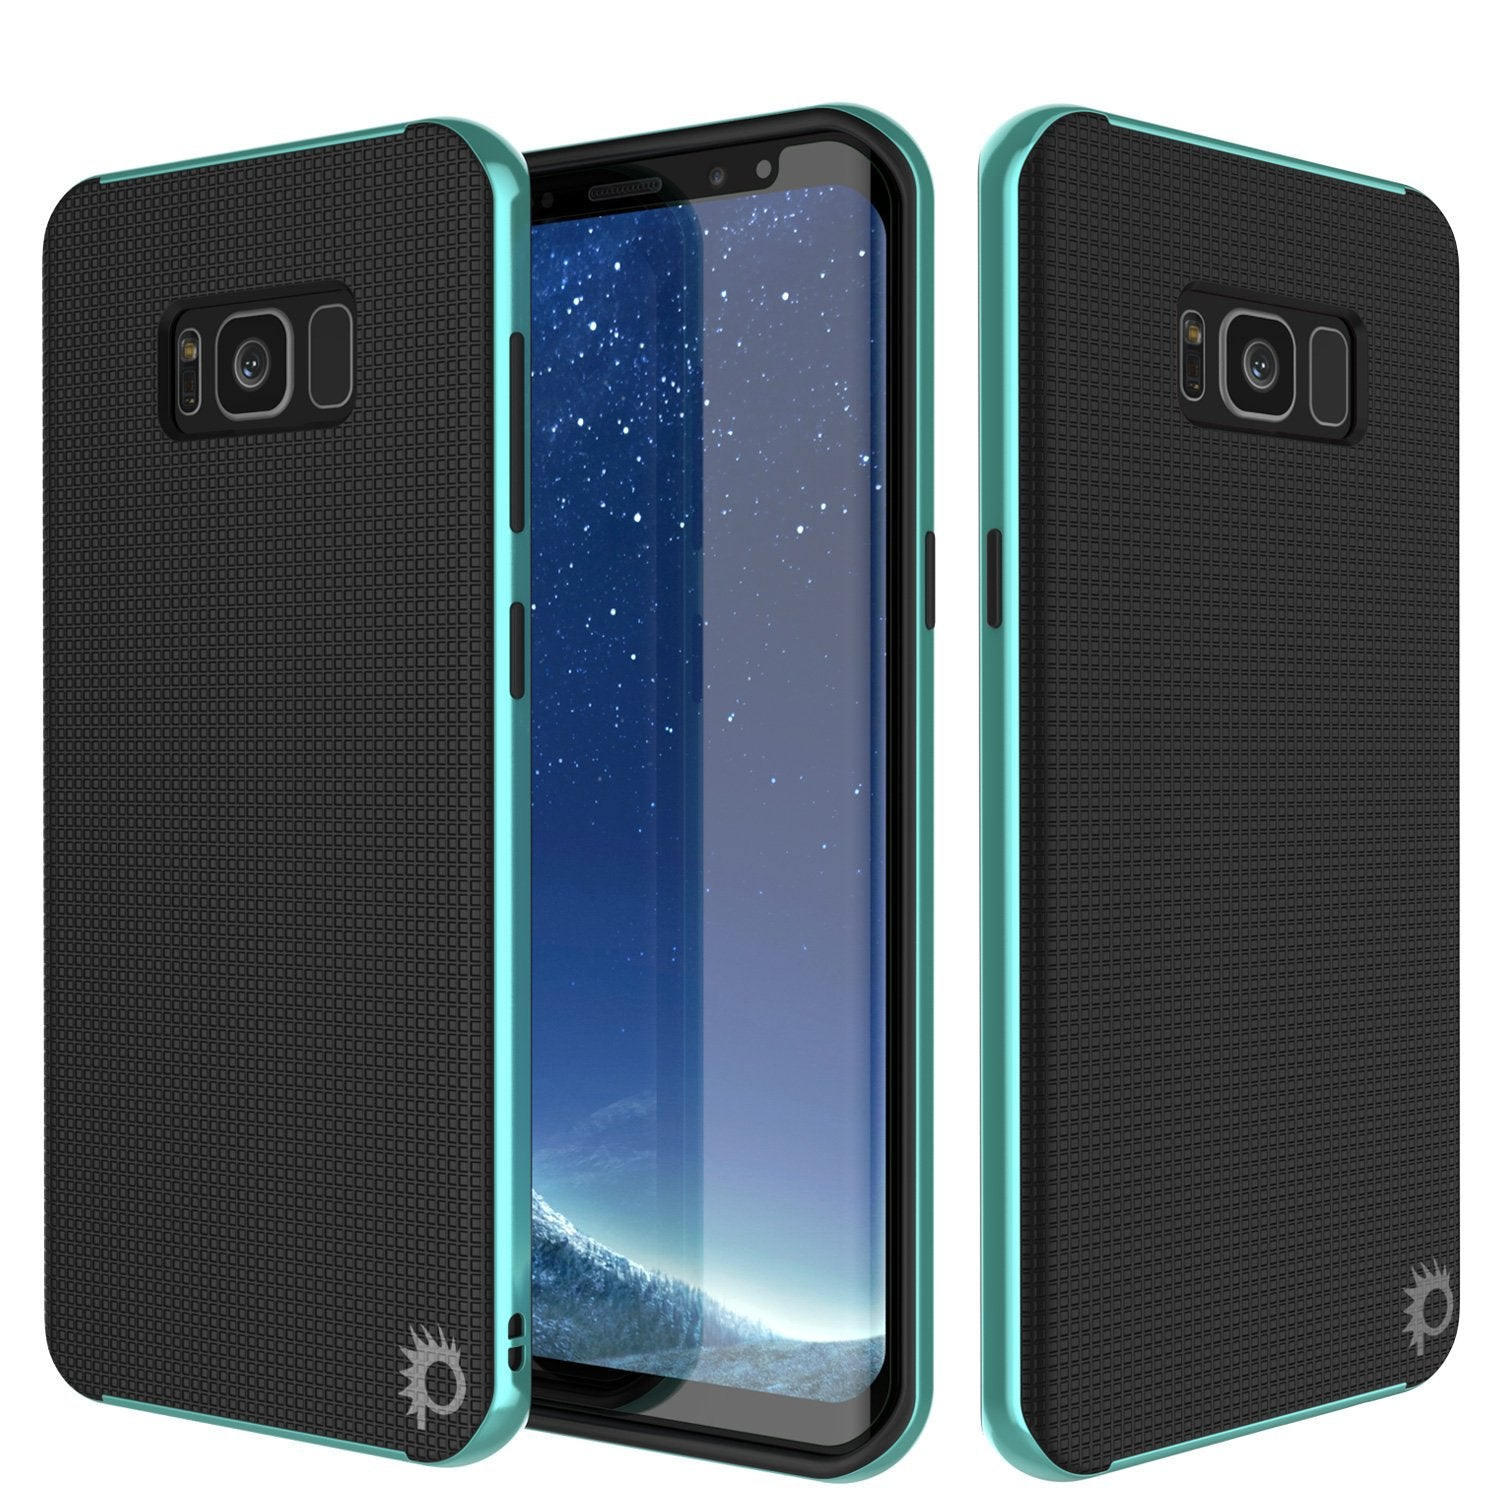 Galaxy S8 Case, PunkCase [Stealth Series] Hybrid 3-Piece Shockproof Dual Layer Cover [Teal]